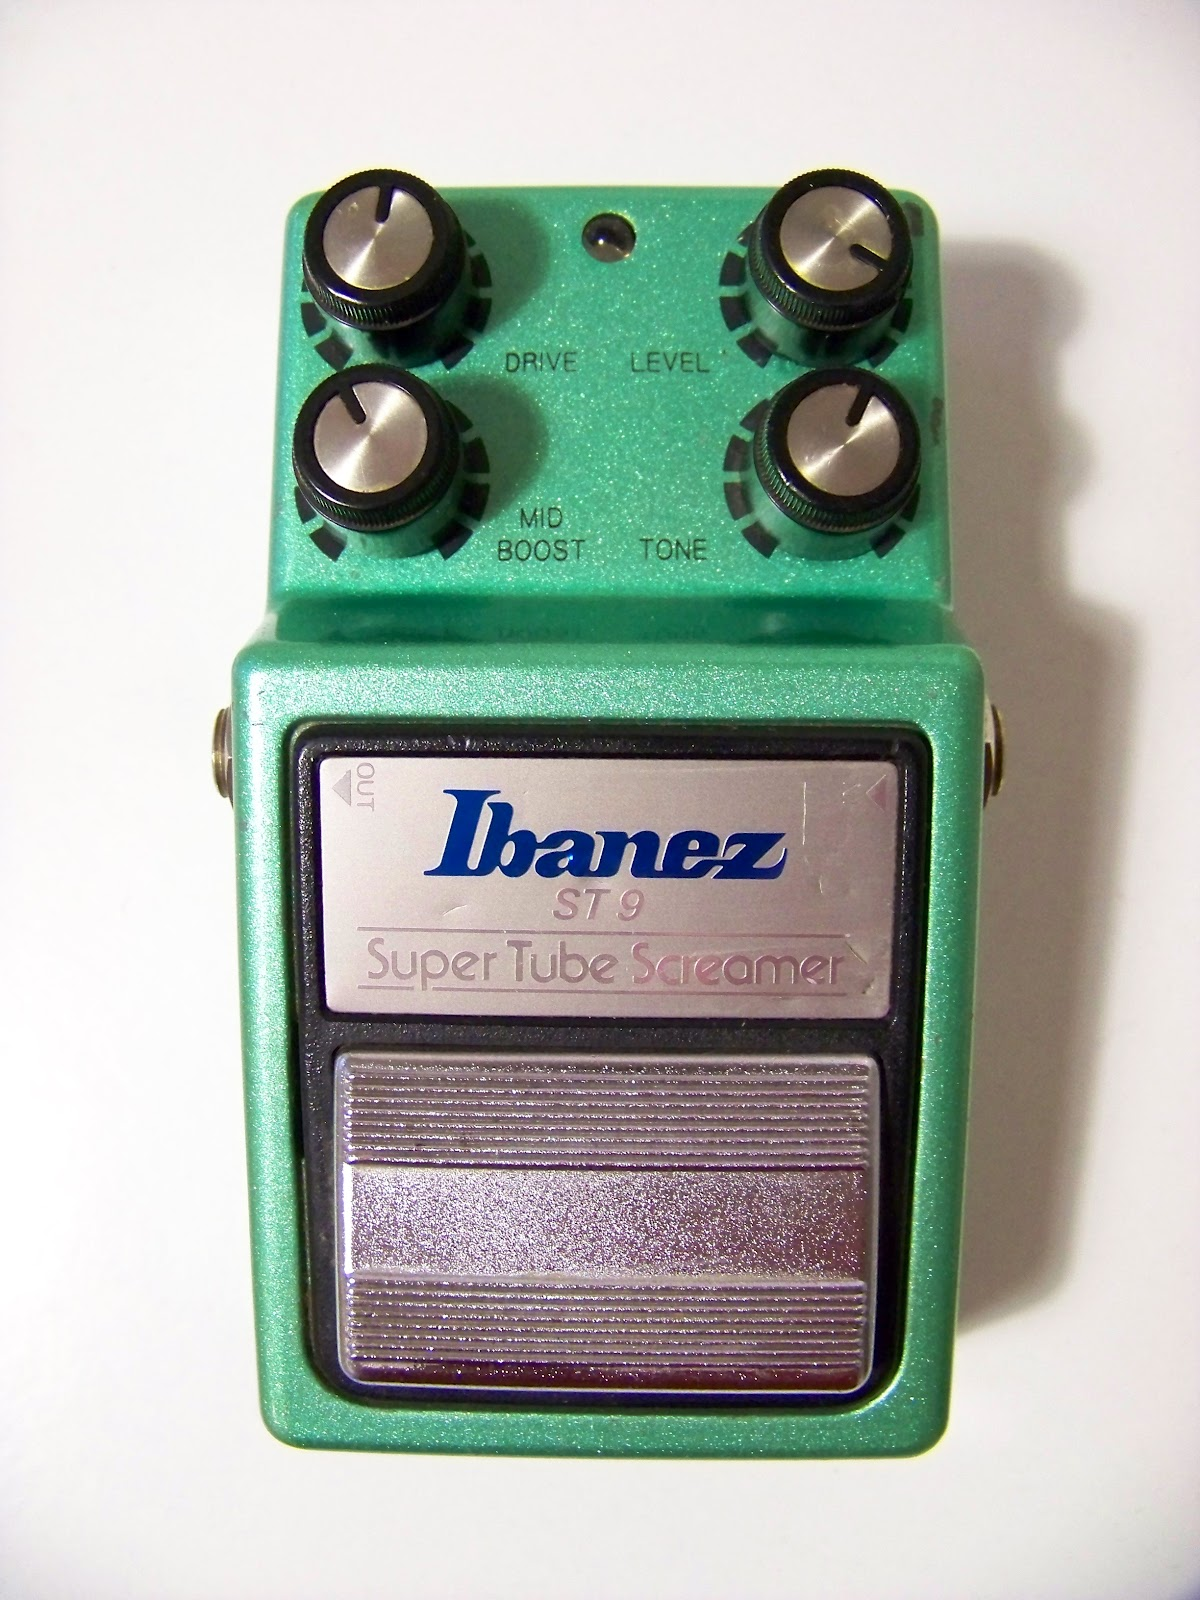 Please help me date this Ibanez pedal